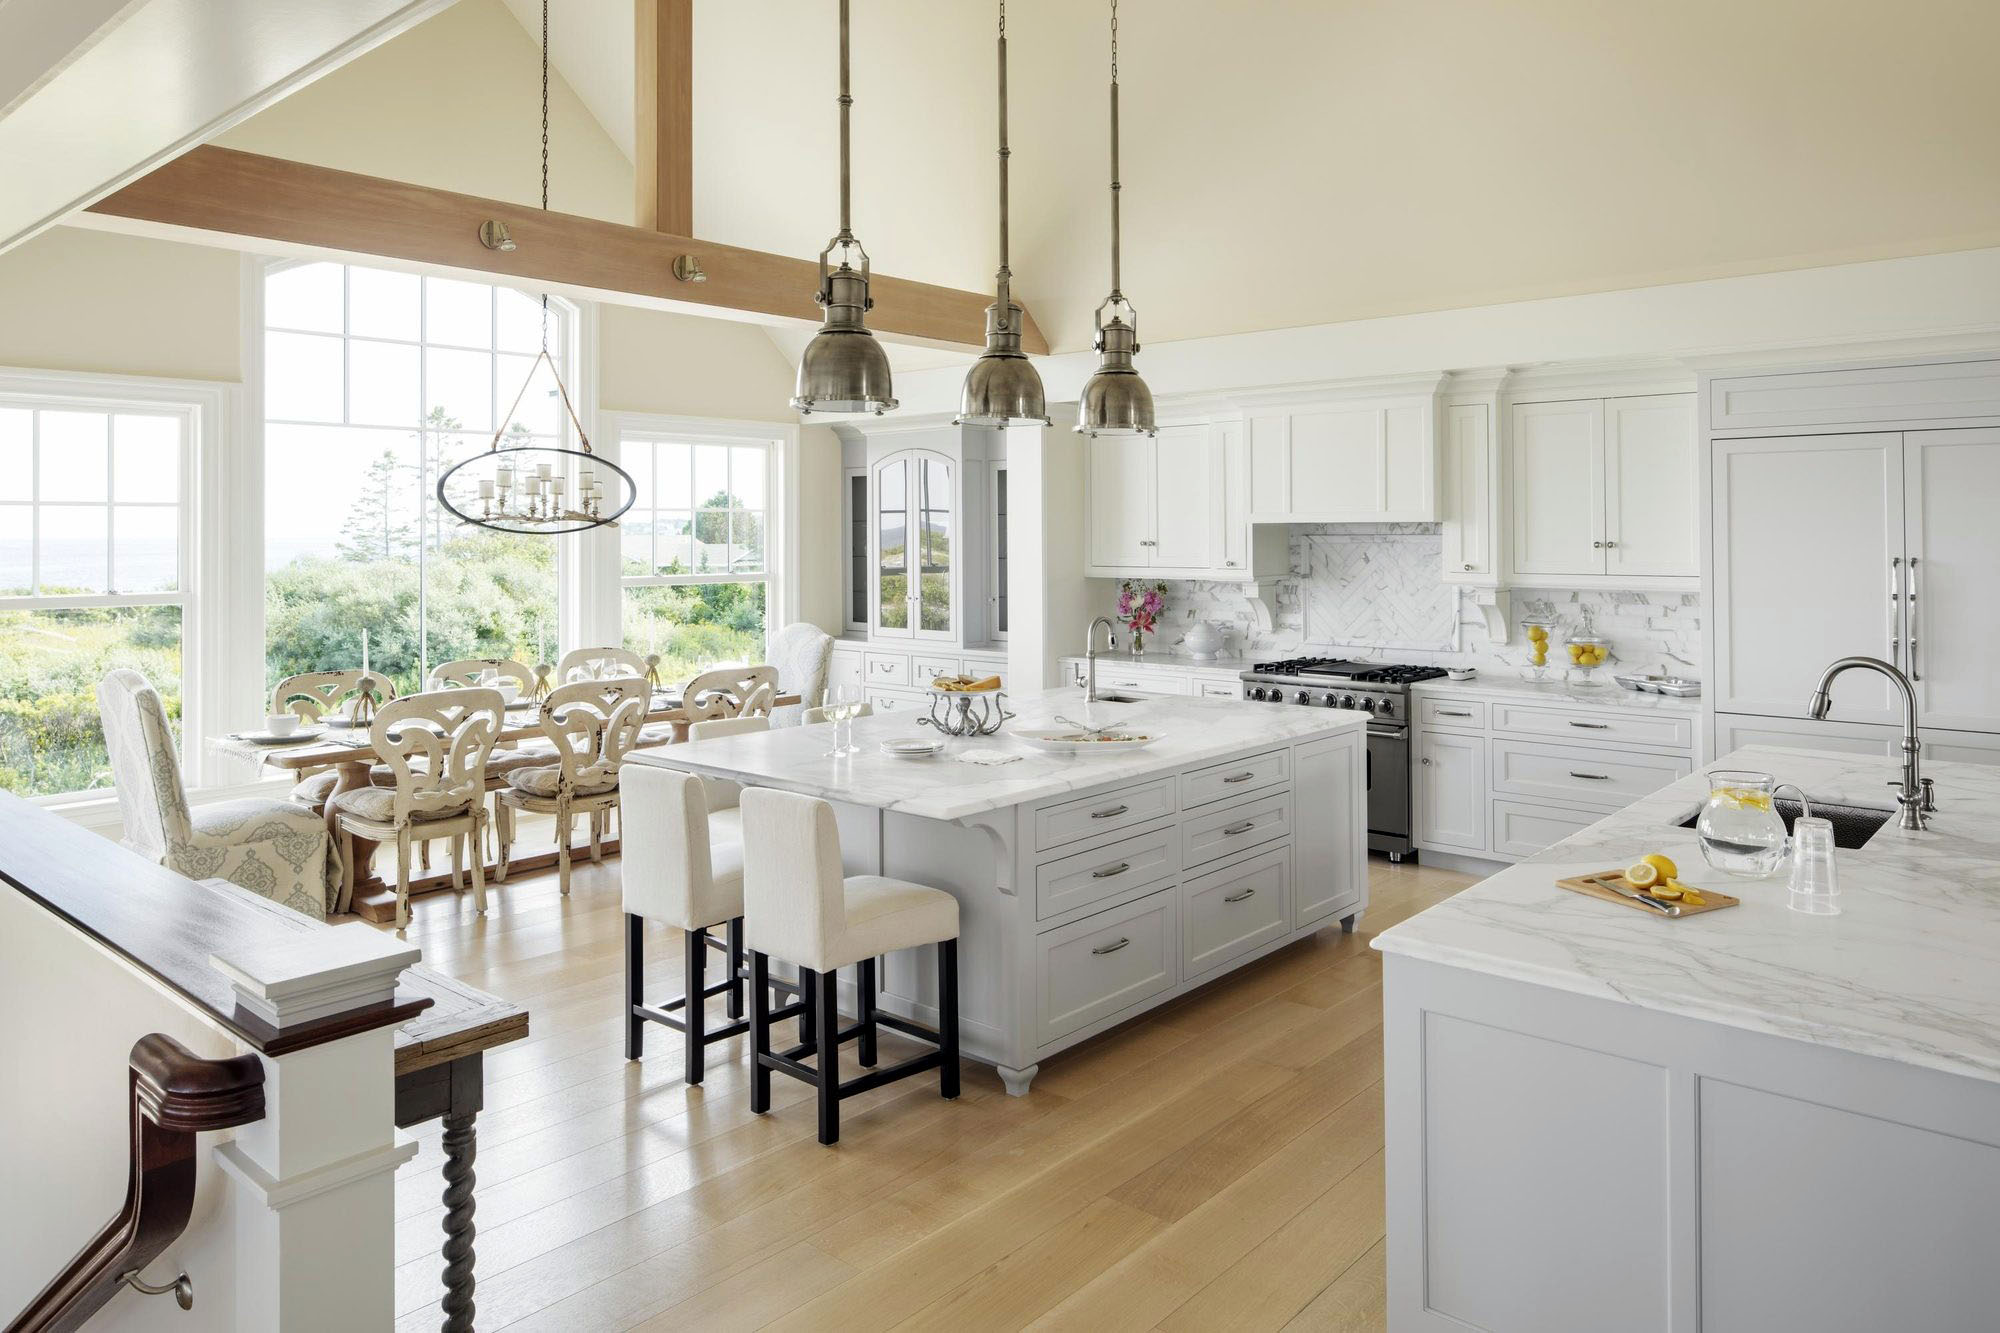 Open concept luxury kitchen with a large island flowing to a dining area with 8 seat wood table.